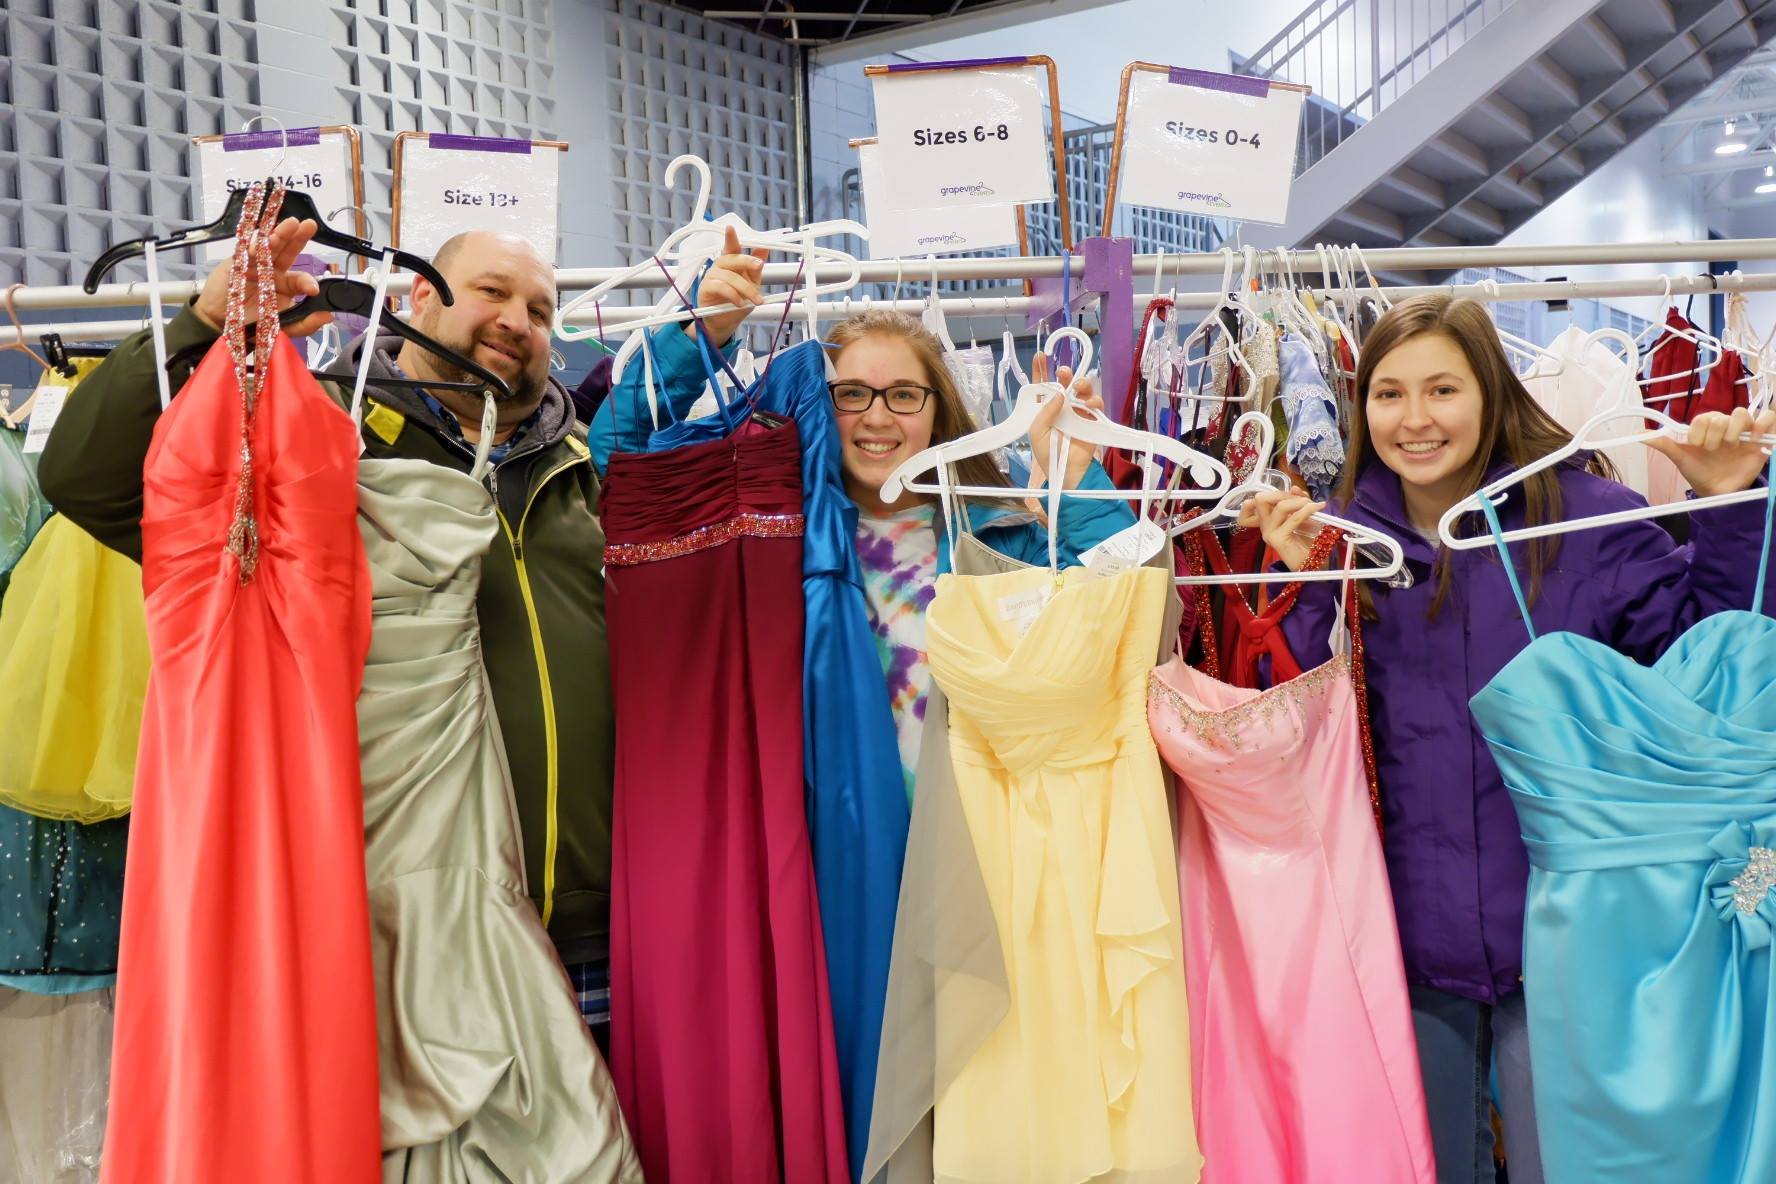 Each Grapevine event partners with local charities to donate unsold items, including Harvest House Atlantic & Project Prom Dress.